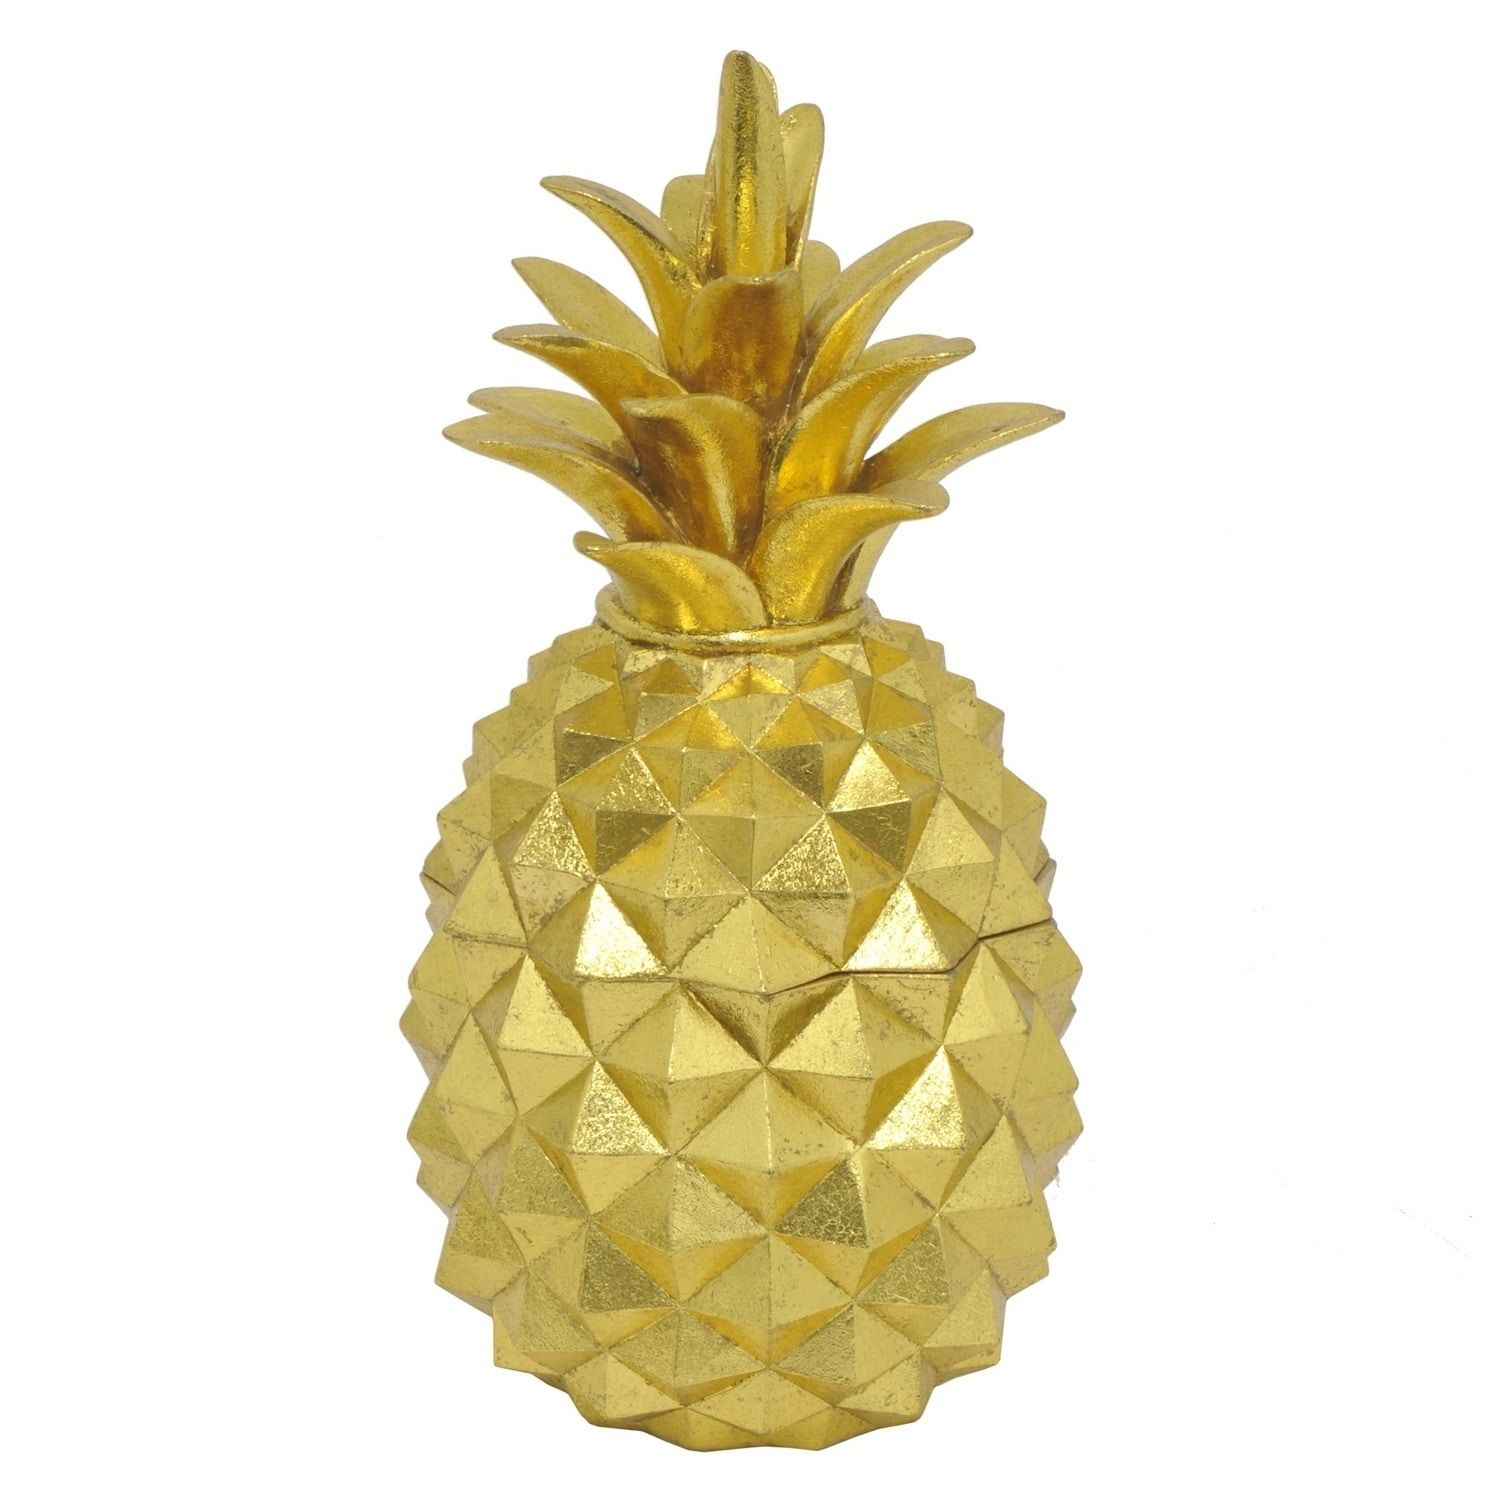 Three hands decorative gold resin pineapple covered jar resin